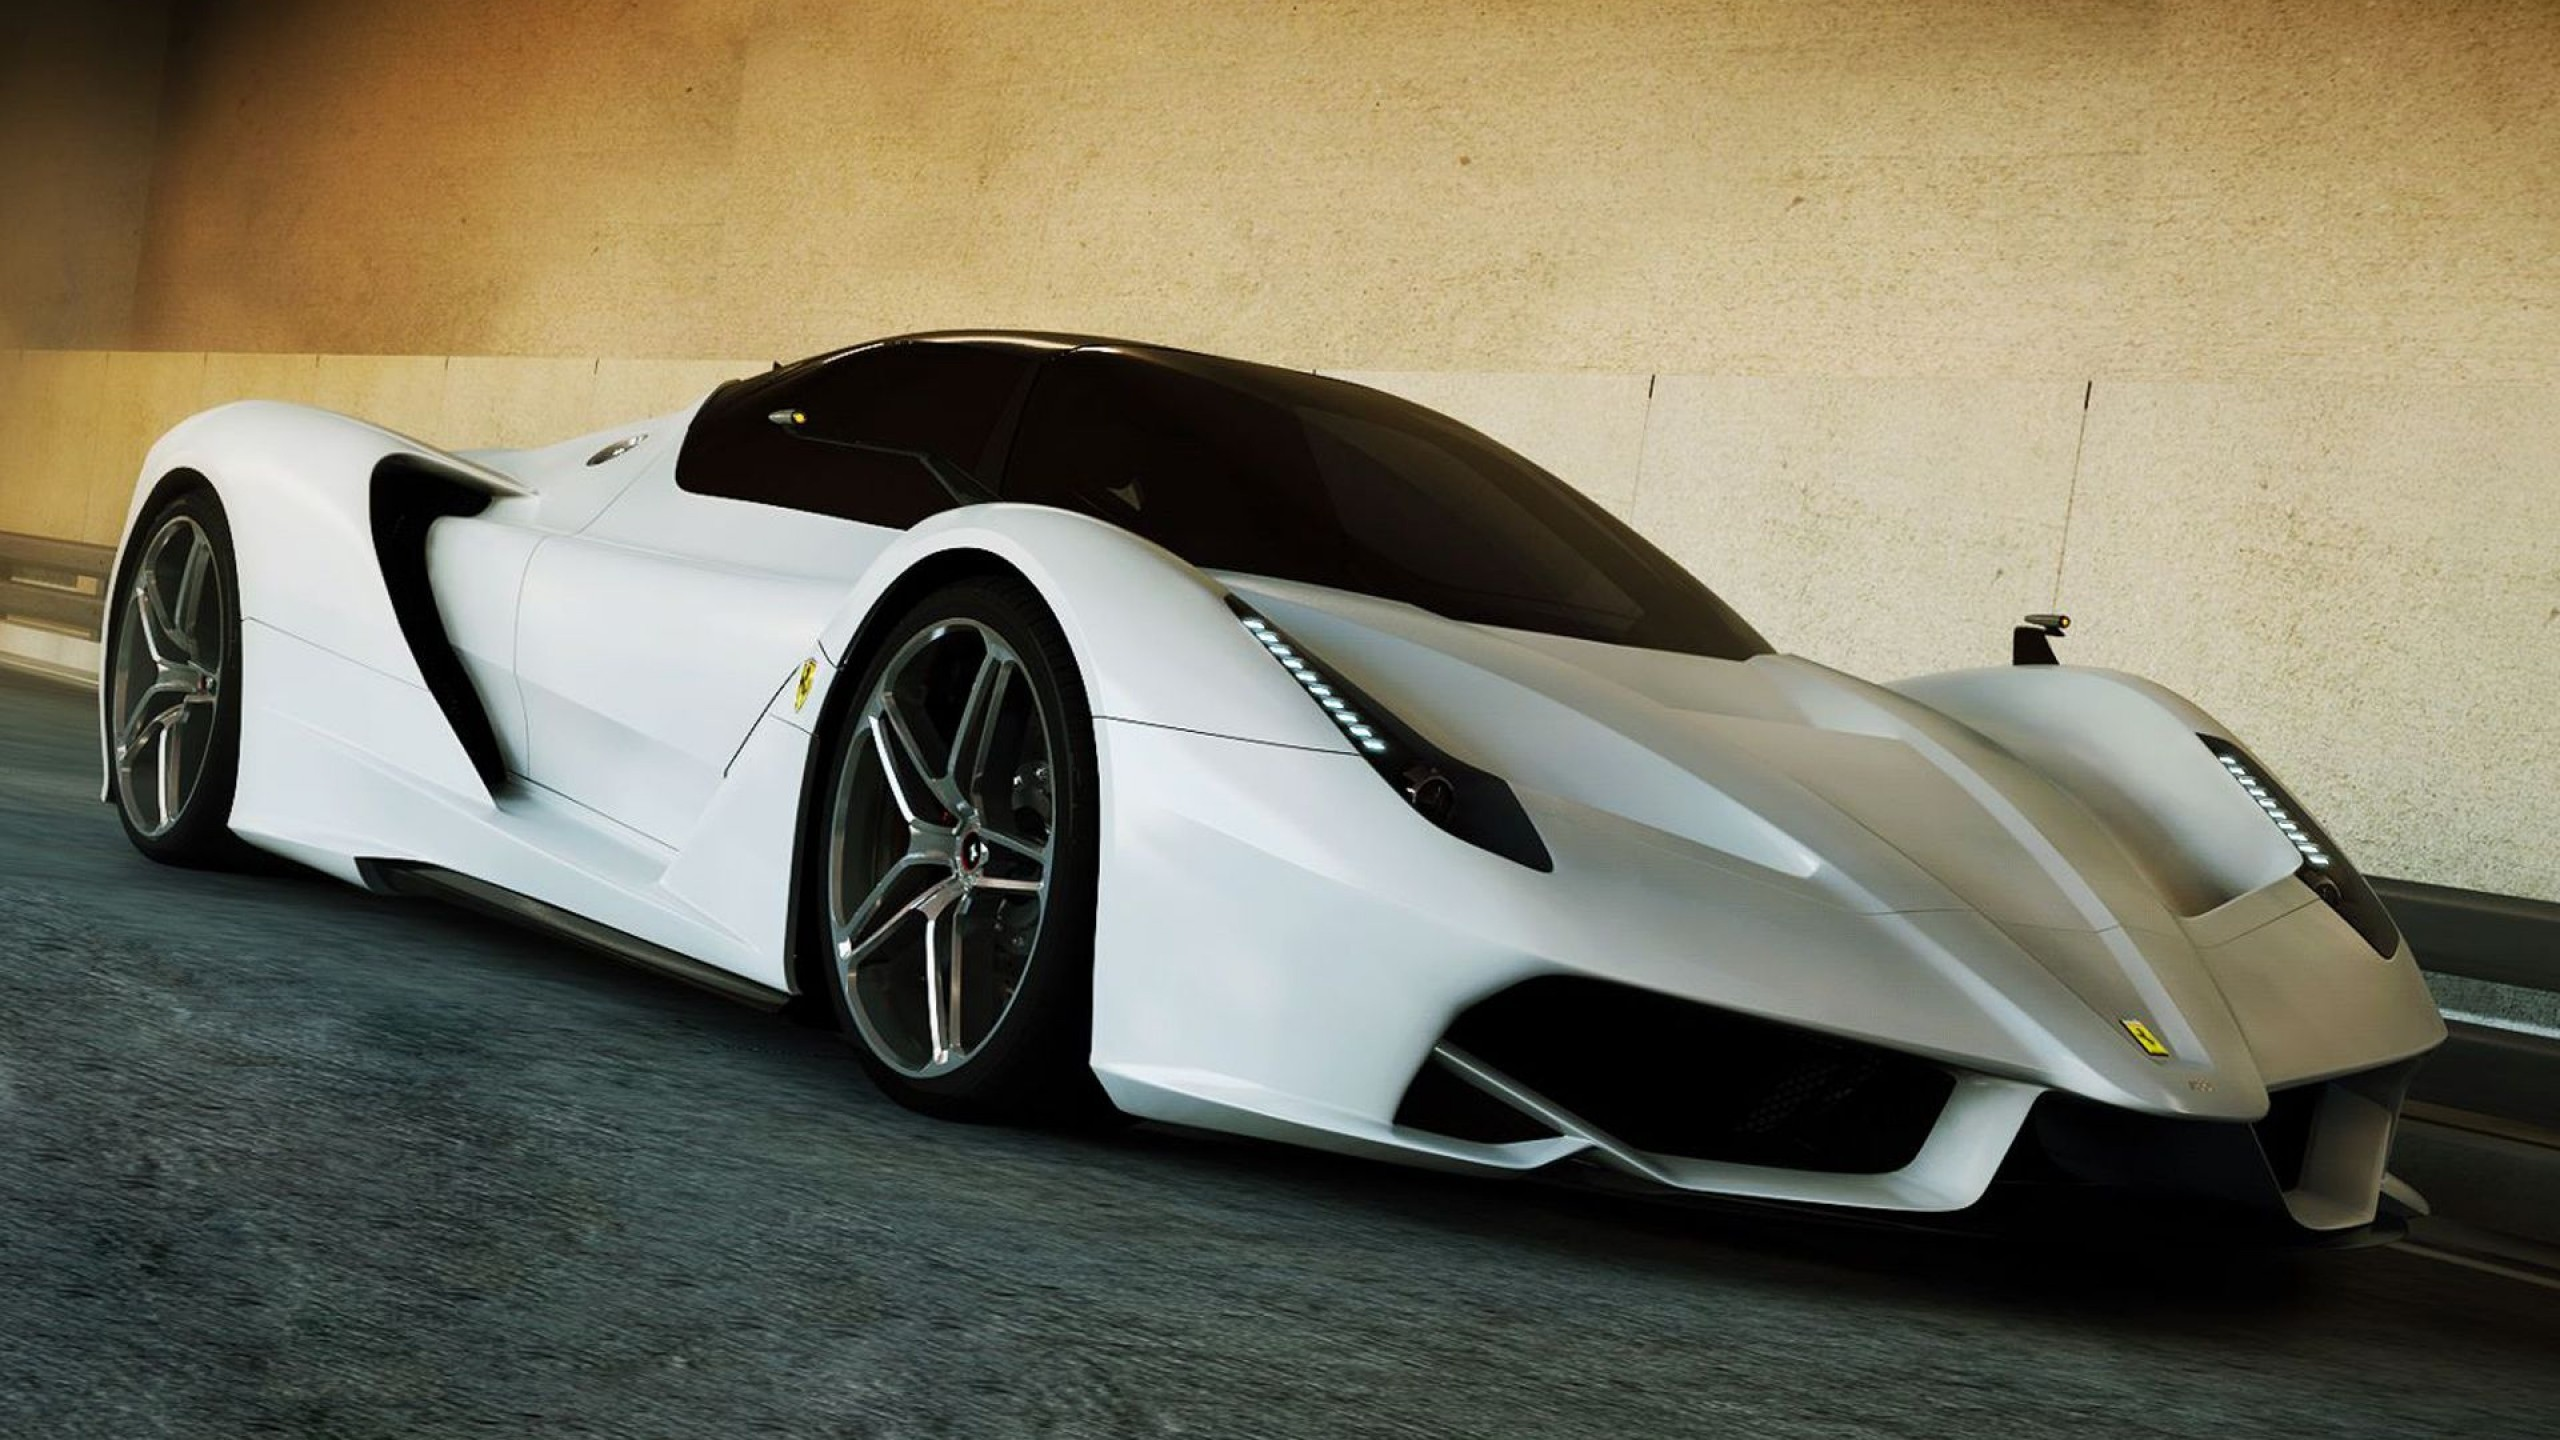 Cars Wallpapers: Supercars HD Wallpapers 1080p (76+ Images